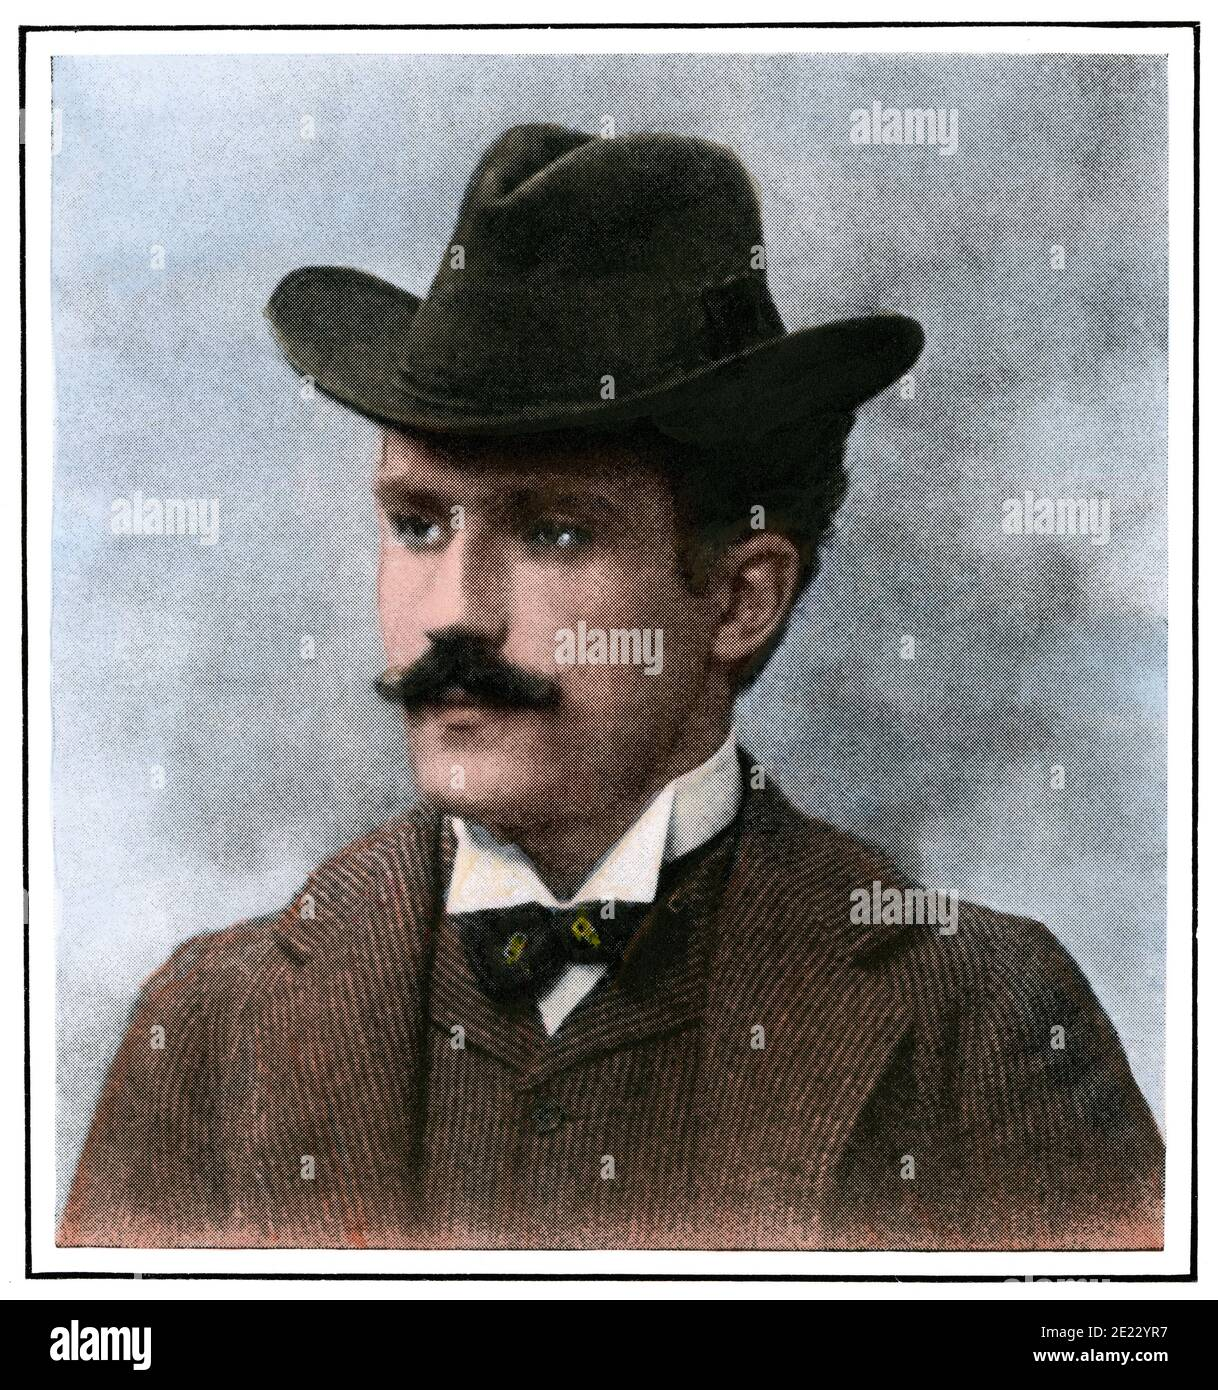 Arturo Toscanini. Hand-colored halftone of a photograph Stock Photo